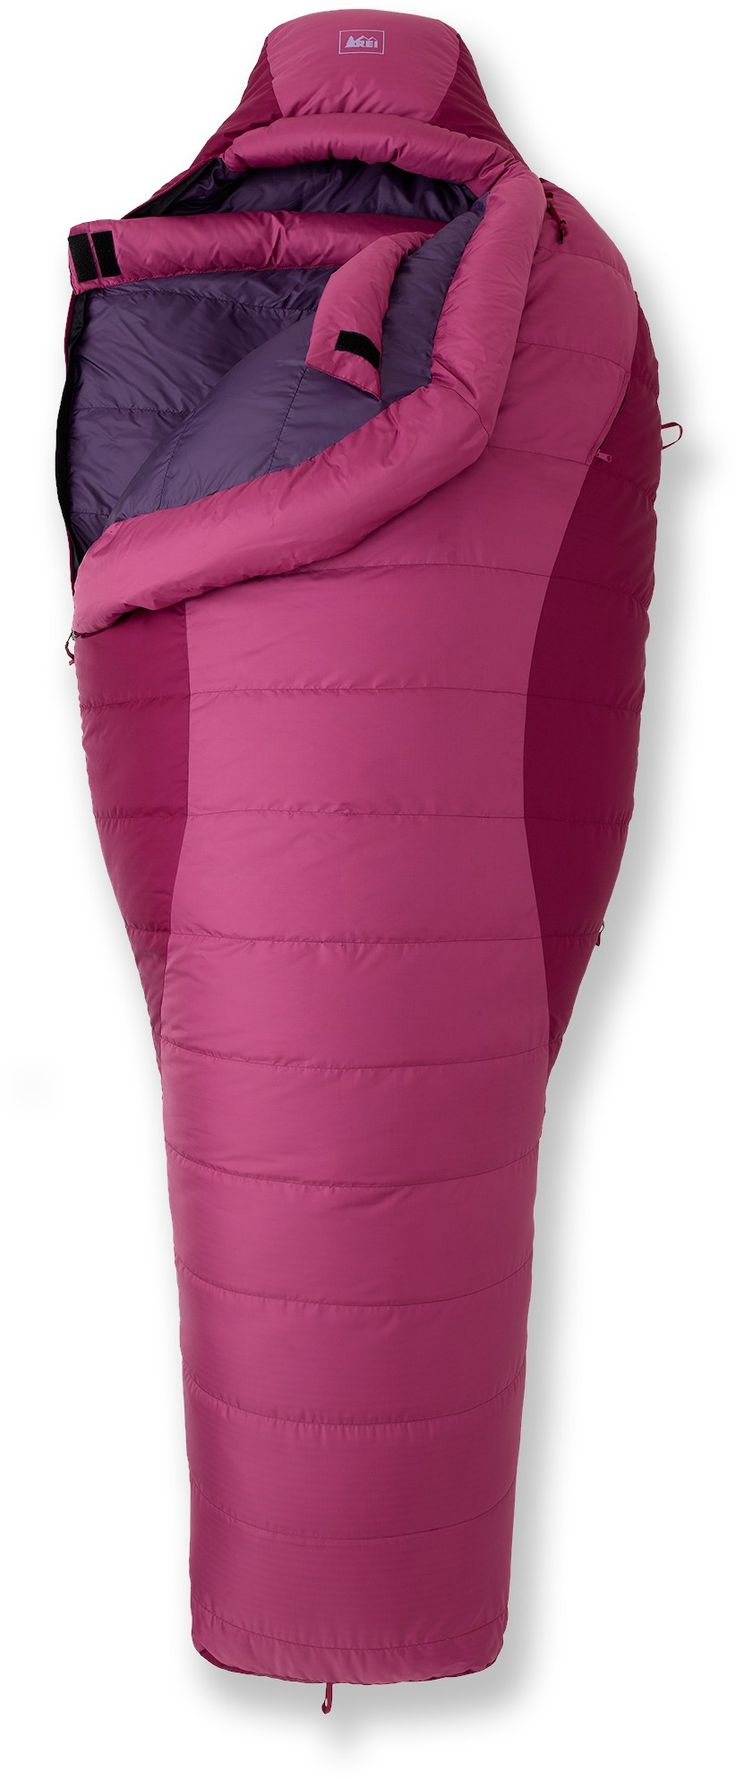 REI Habanera Sleeping Bag - Women's Backpackers Gear award for best down bargain for winter temps.